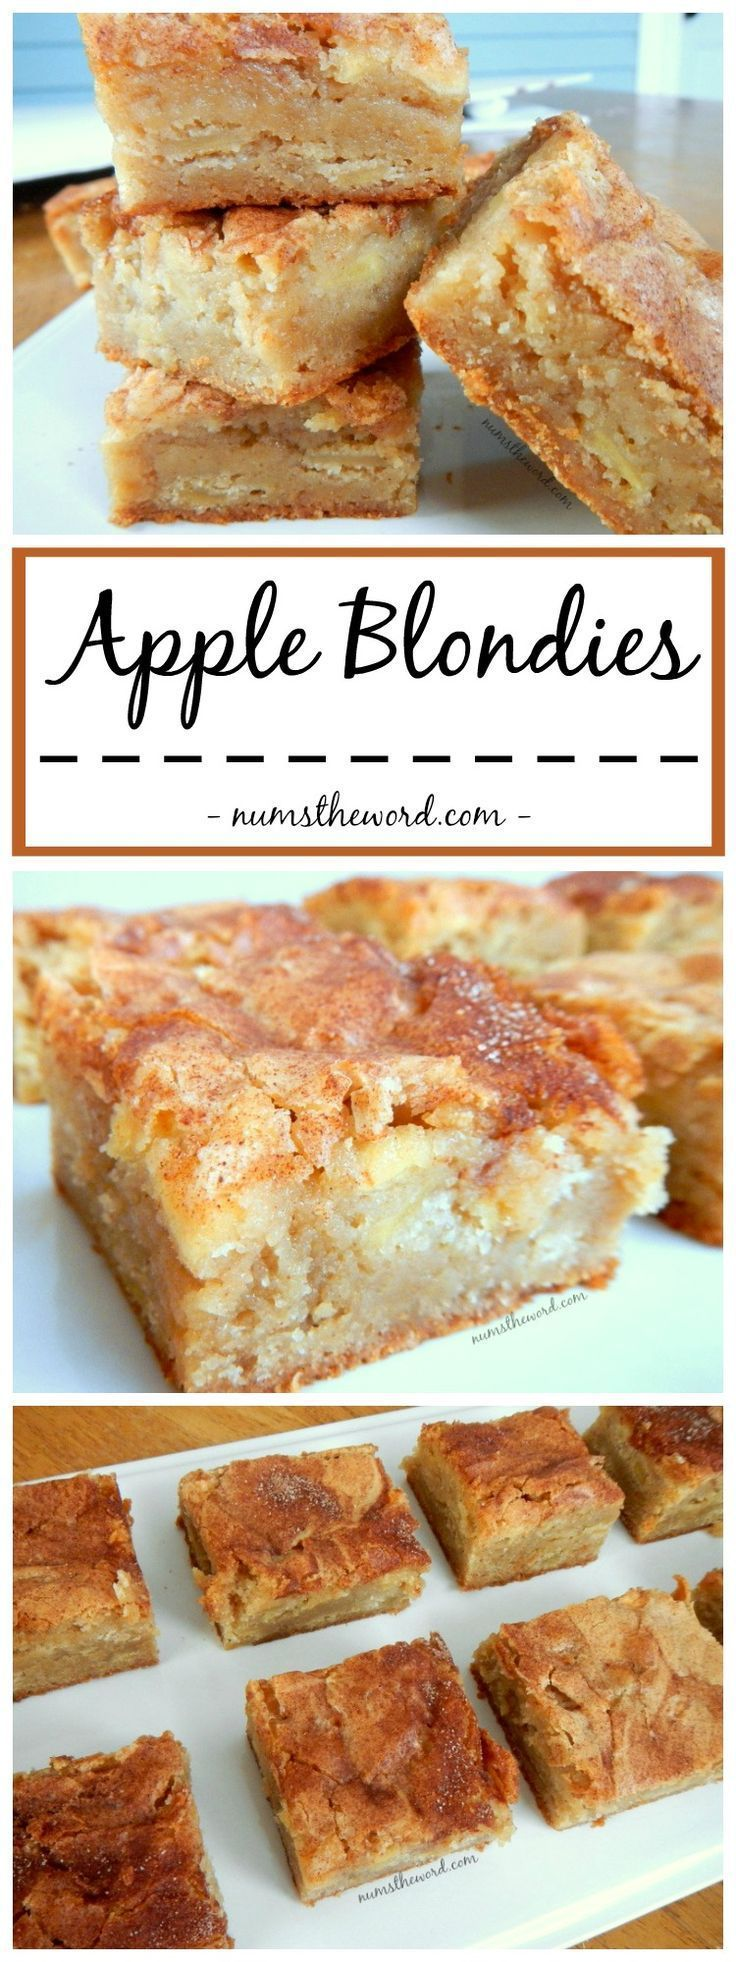 *VIDEO* Apple Blondies - A perfect Autumn dessert that mixes apple pie and blondies. Yummy Apple Blondies with a large scoop of vanilla ice cream is the perfect dessert or skip the ice cream and make it a snack!